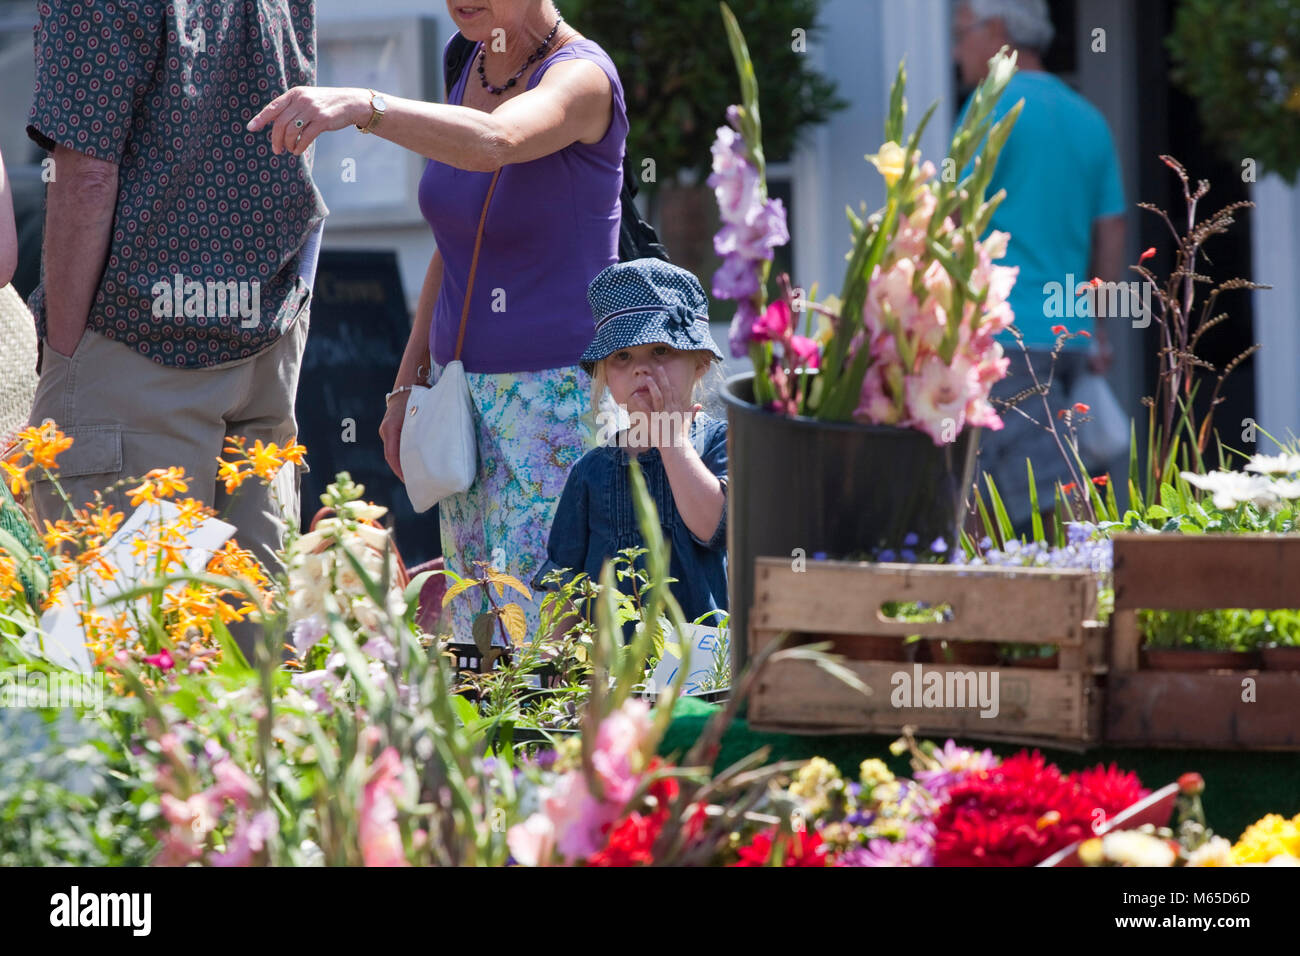 Small girl in a blue hat overlooks a market plant stall - Stock Image